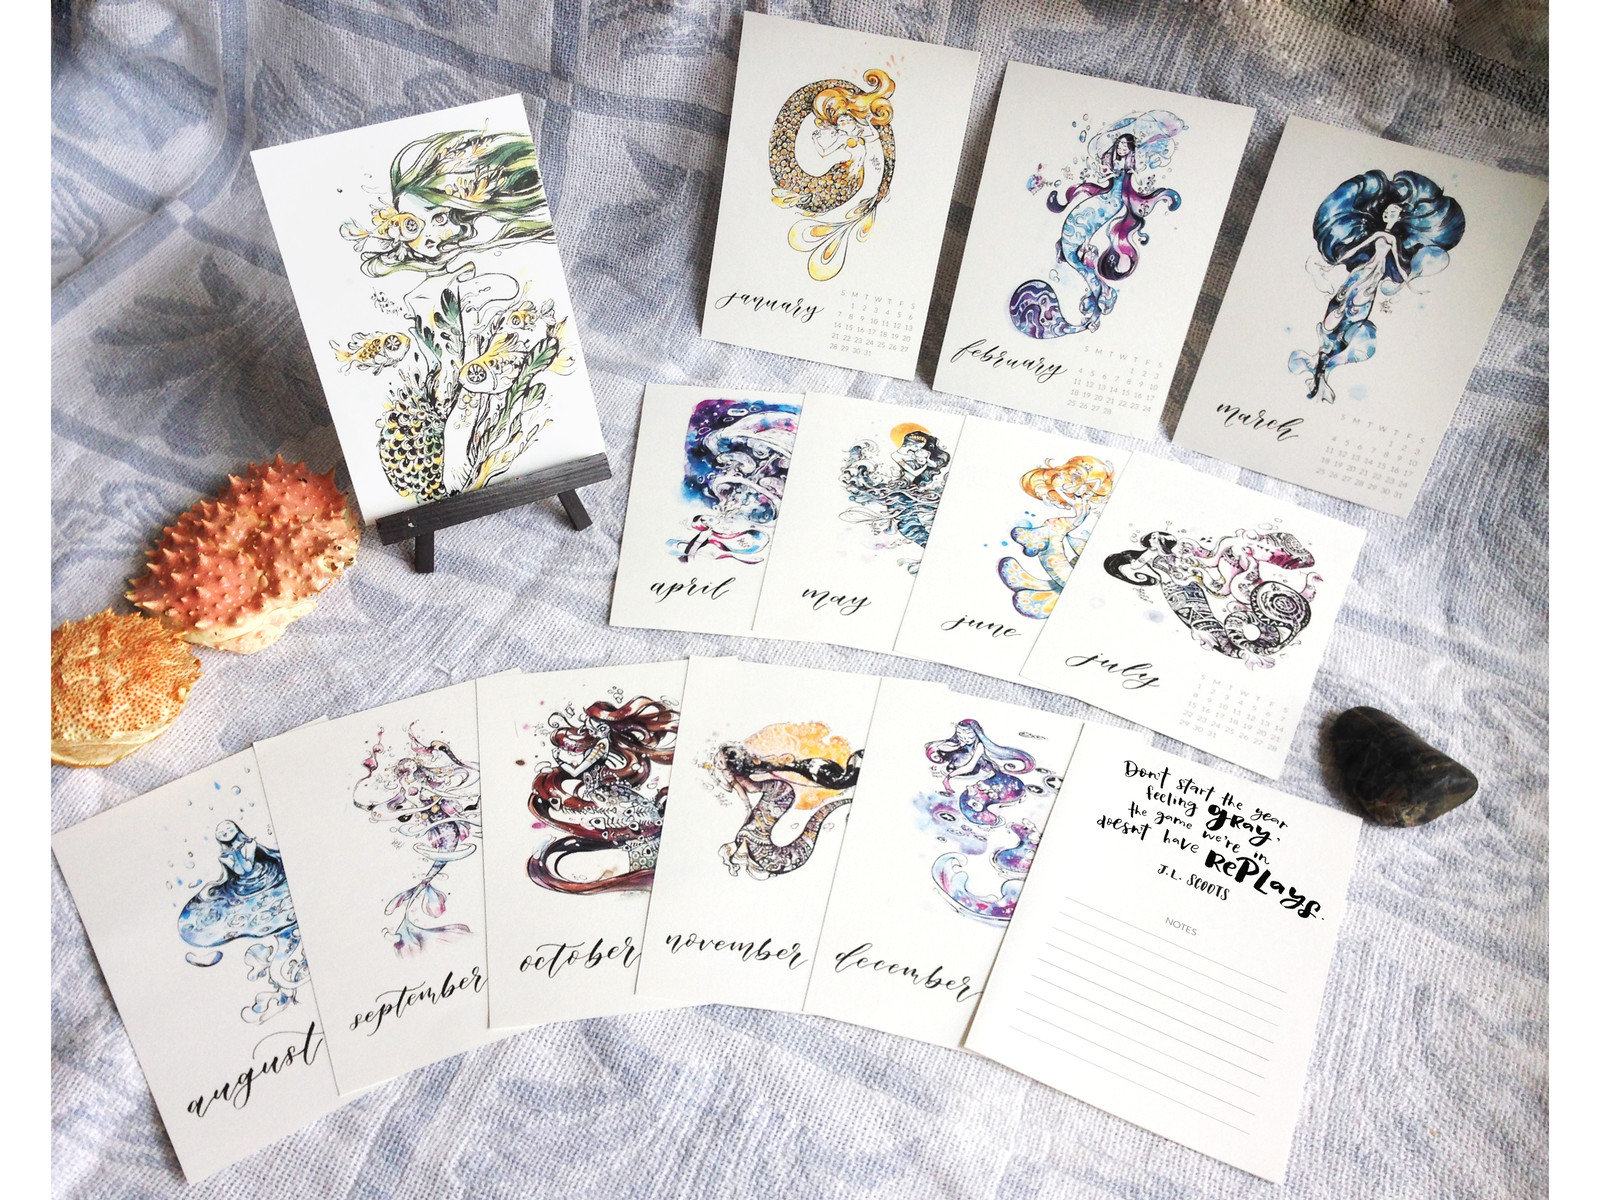 The full set, comes with 2 extra mermaid cards and 12 month cards.